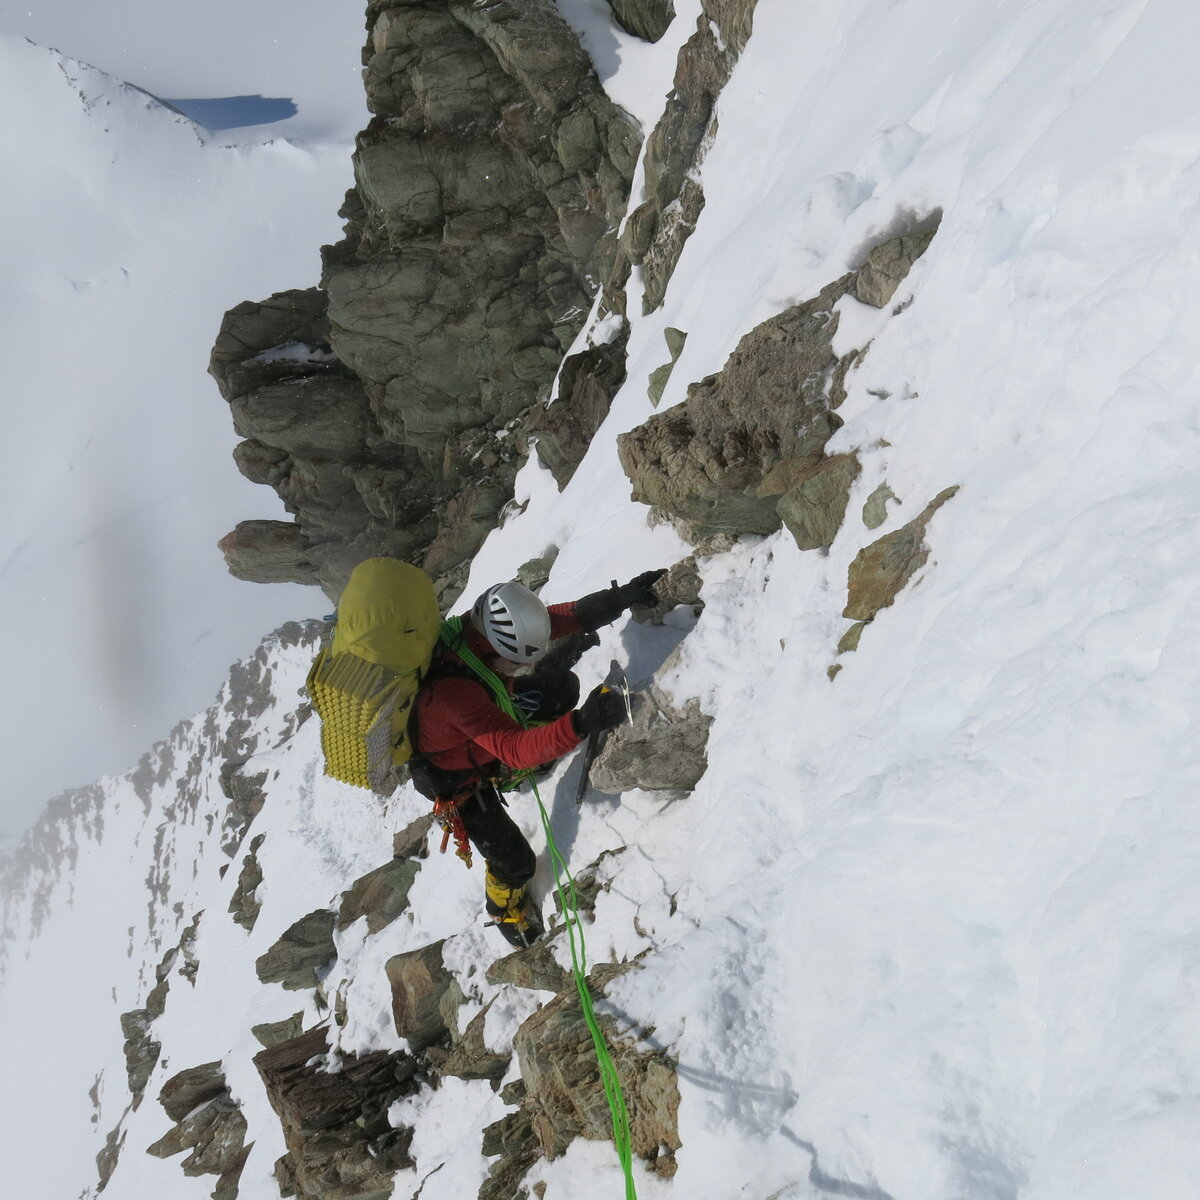 1st guided ascent of Mount Tyree, Antarctica's second highest peak